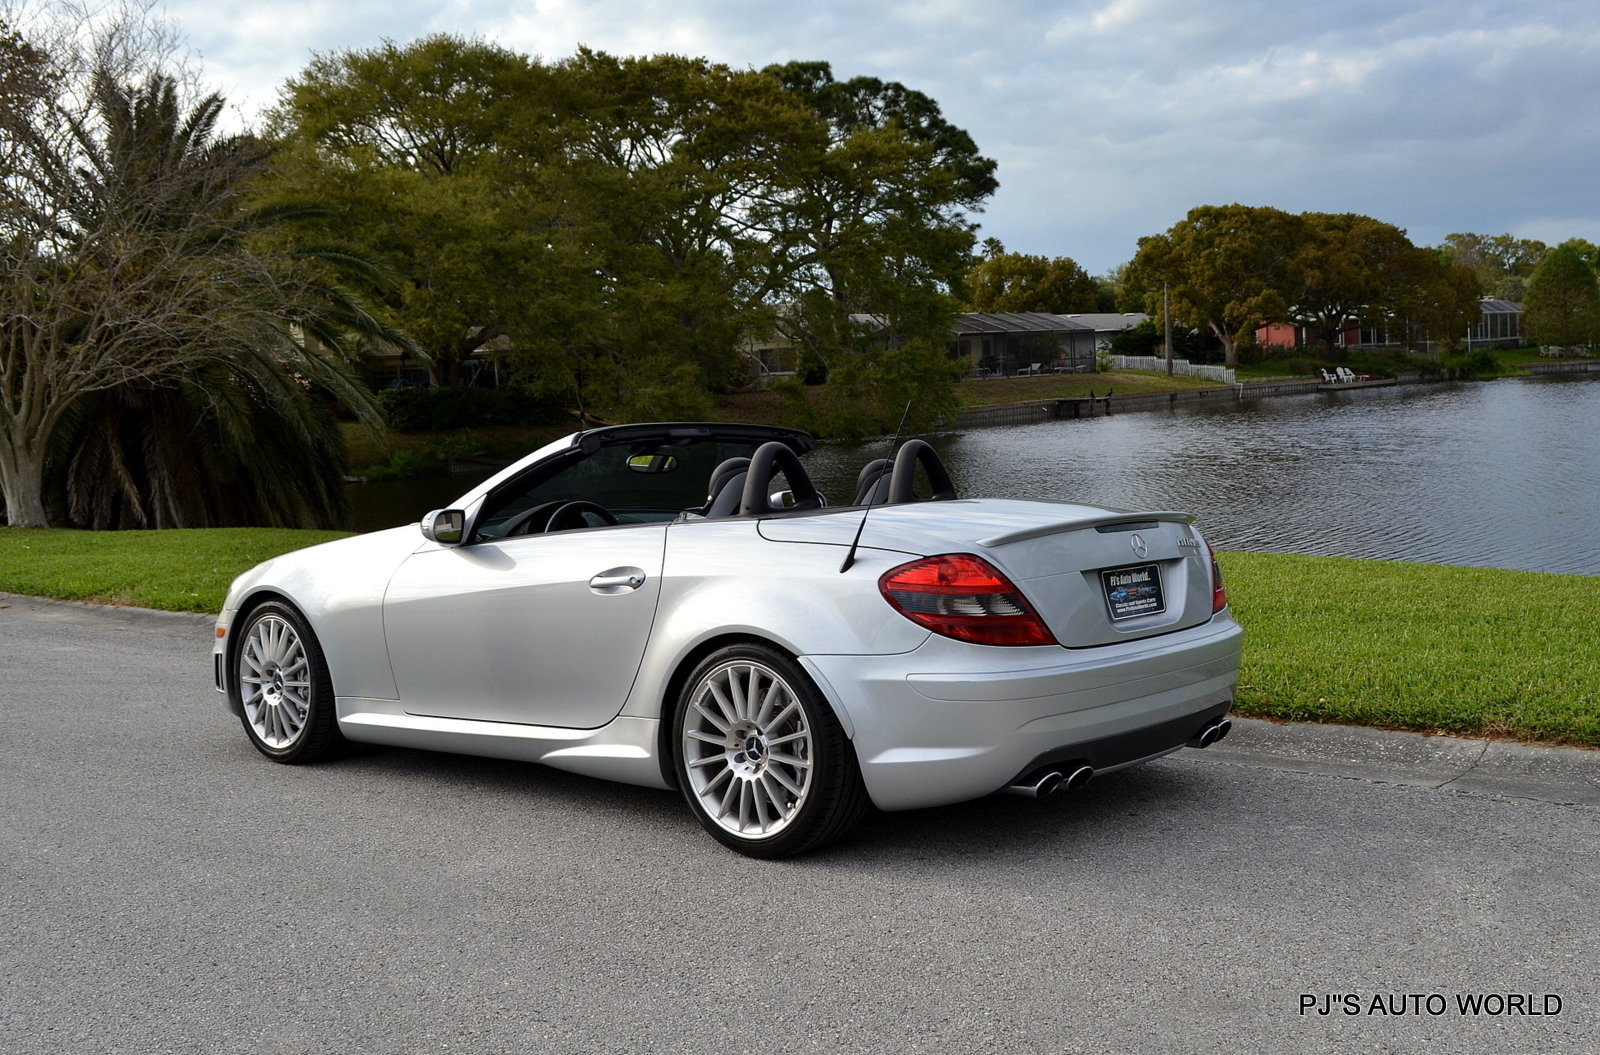 2005 mercedes benz slk class pj 39 s auto world classic cars for sale. Black Bedroom Furniture Sets. Home Design Ideas